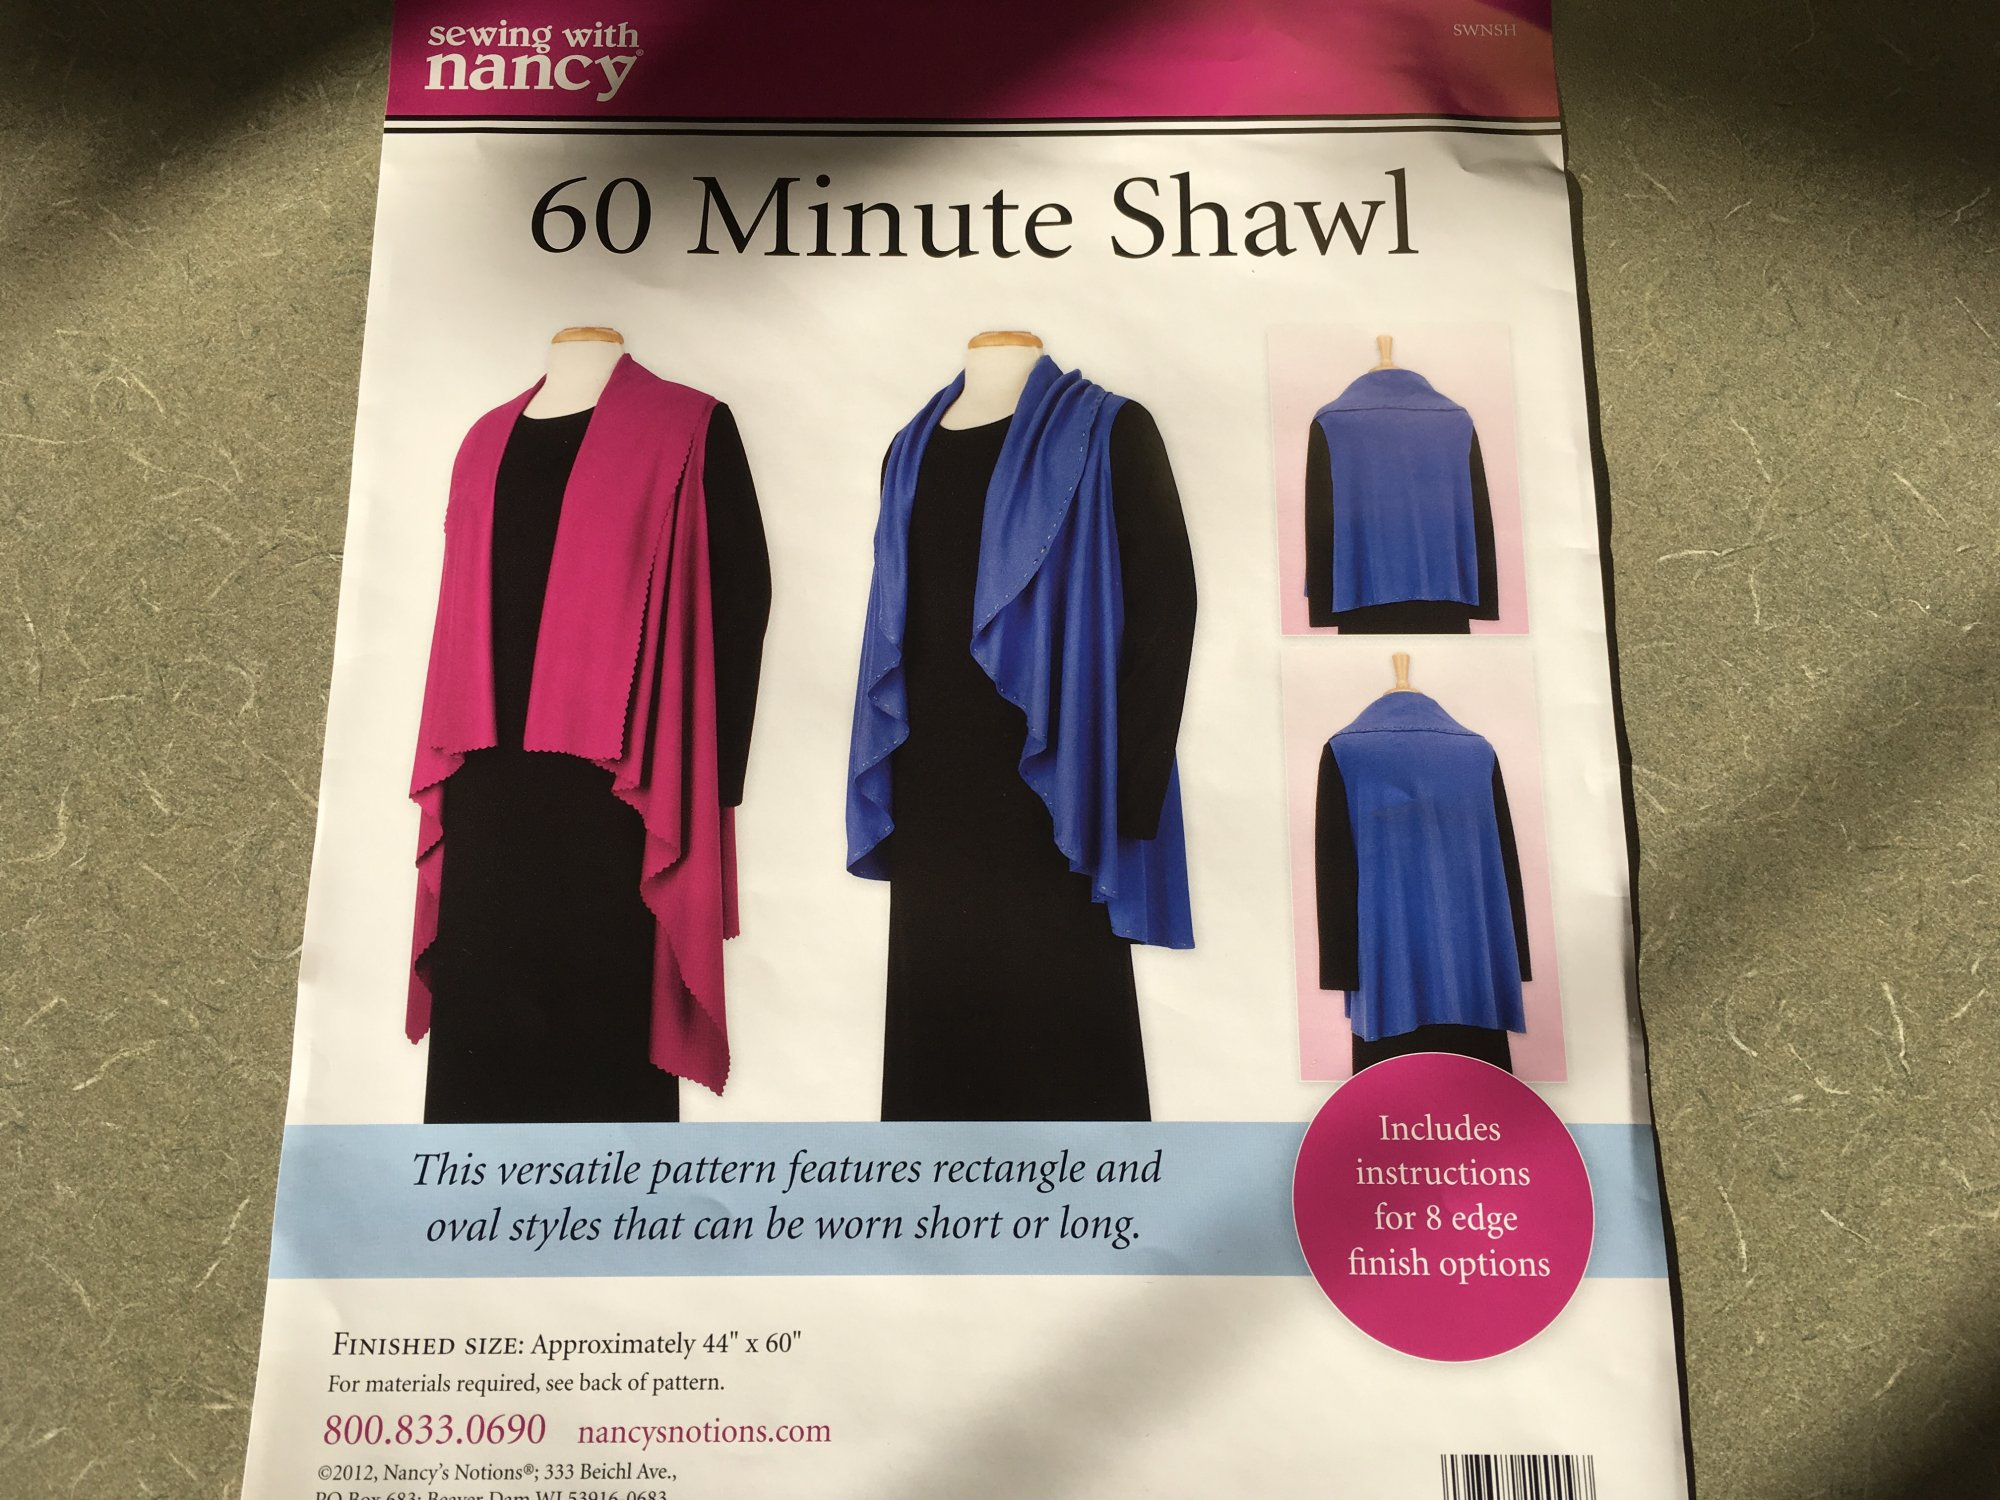 60 MINUTE SHAW PATTERN SWNSH1 Nancy Zieman